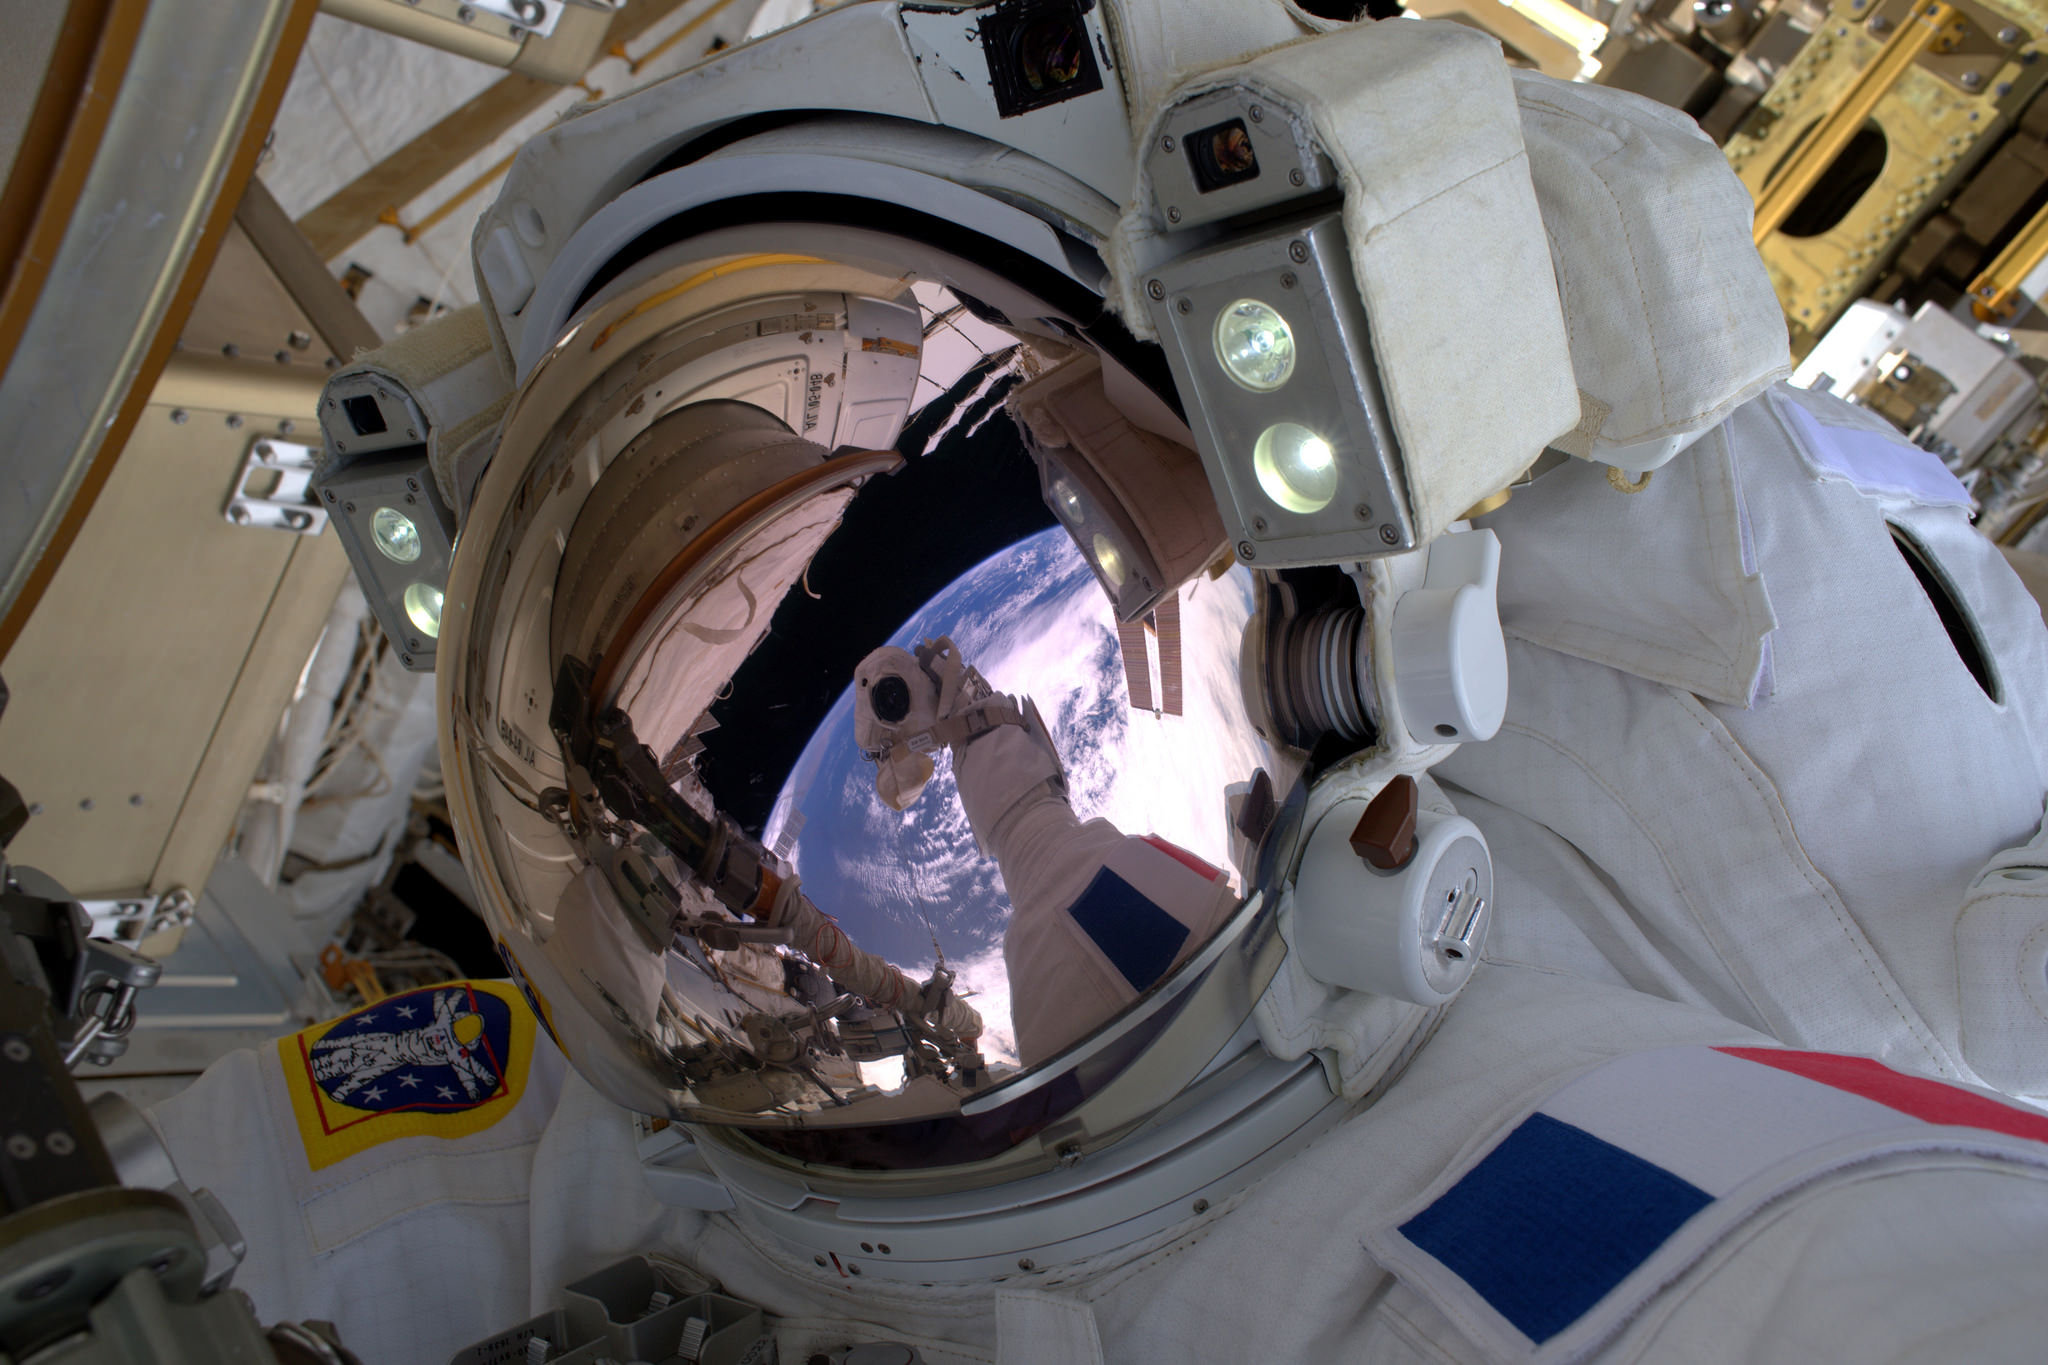 The Best Astronaut Selfies in Space